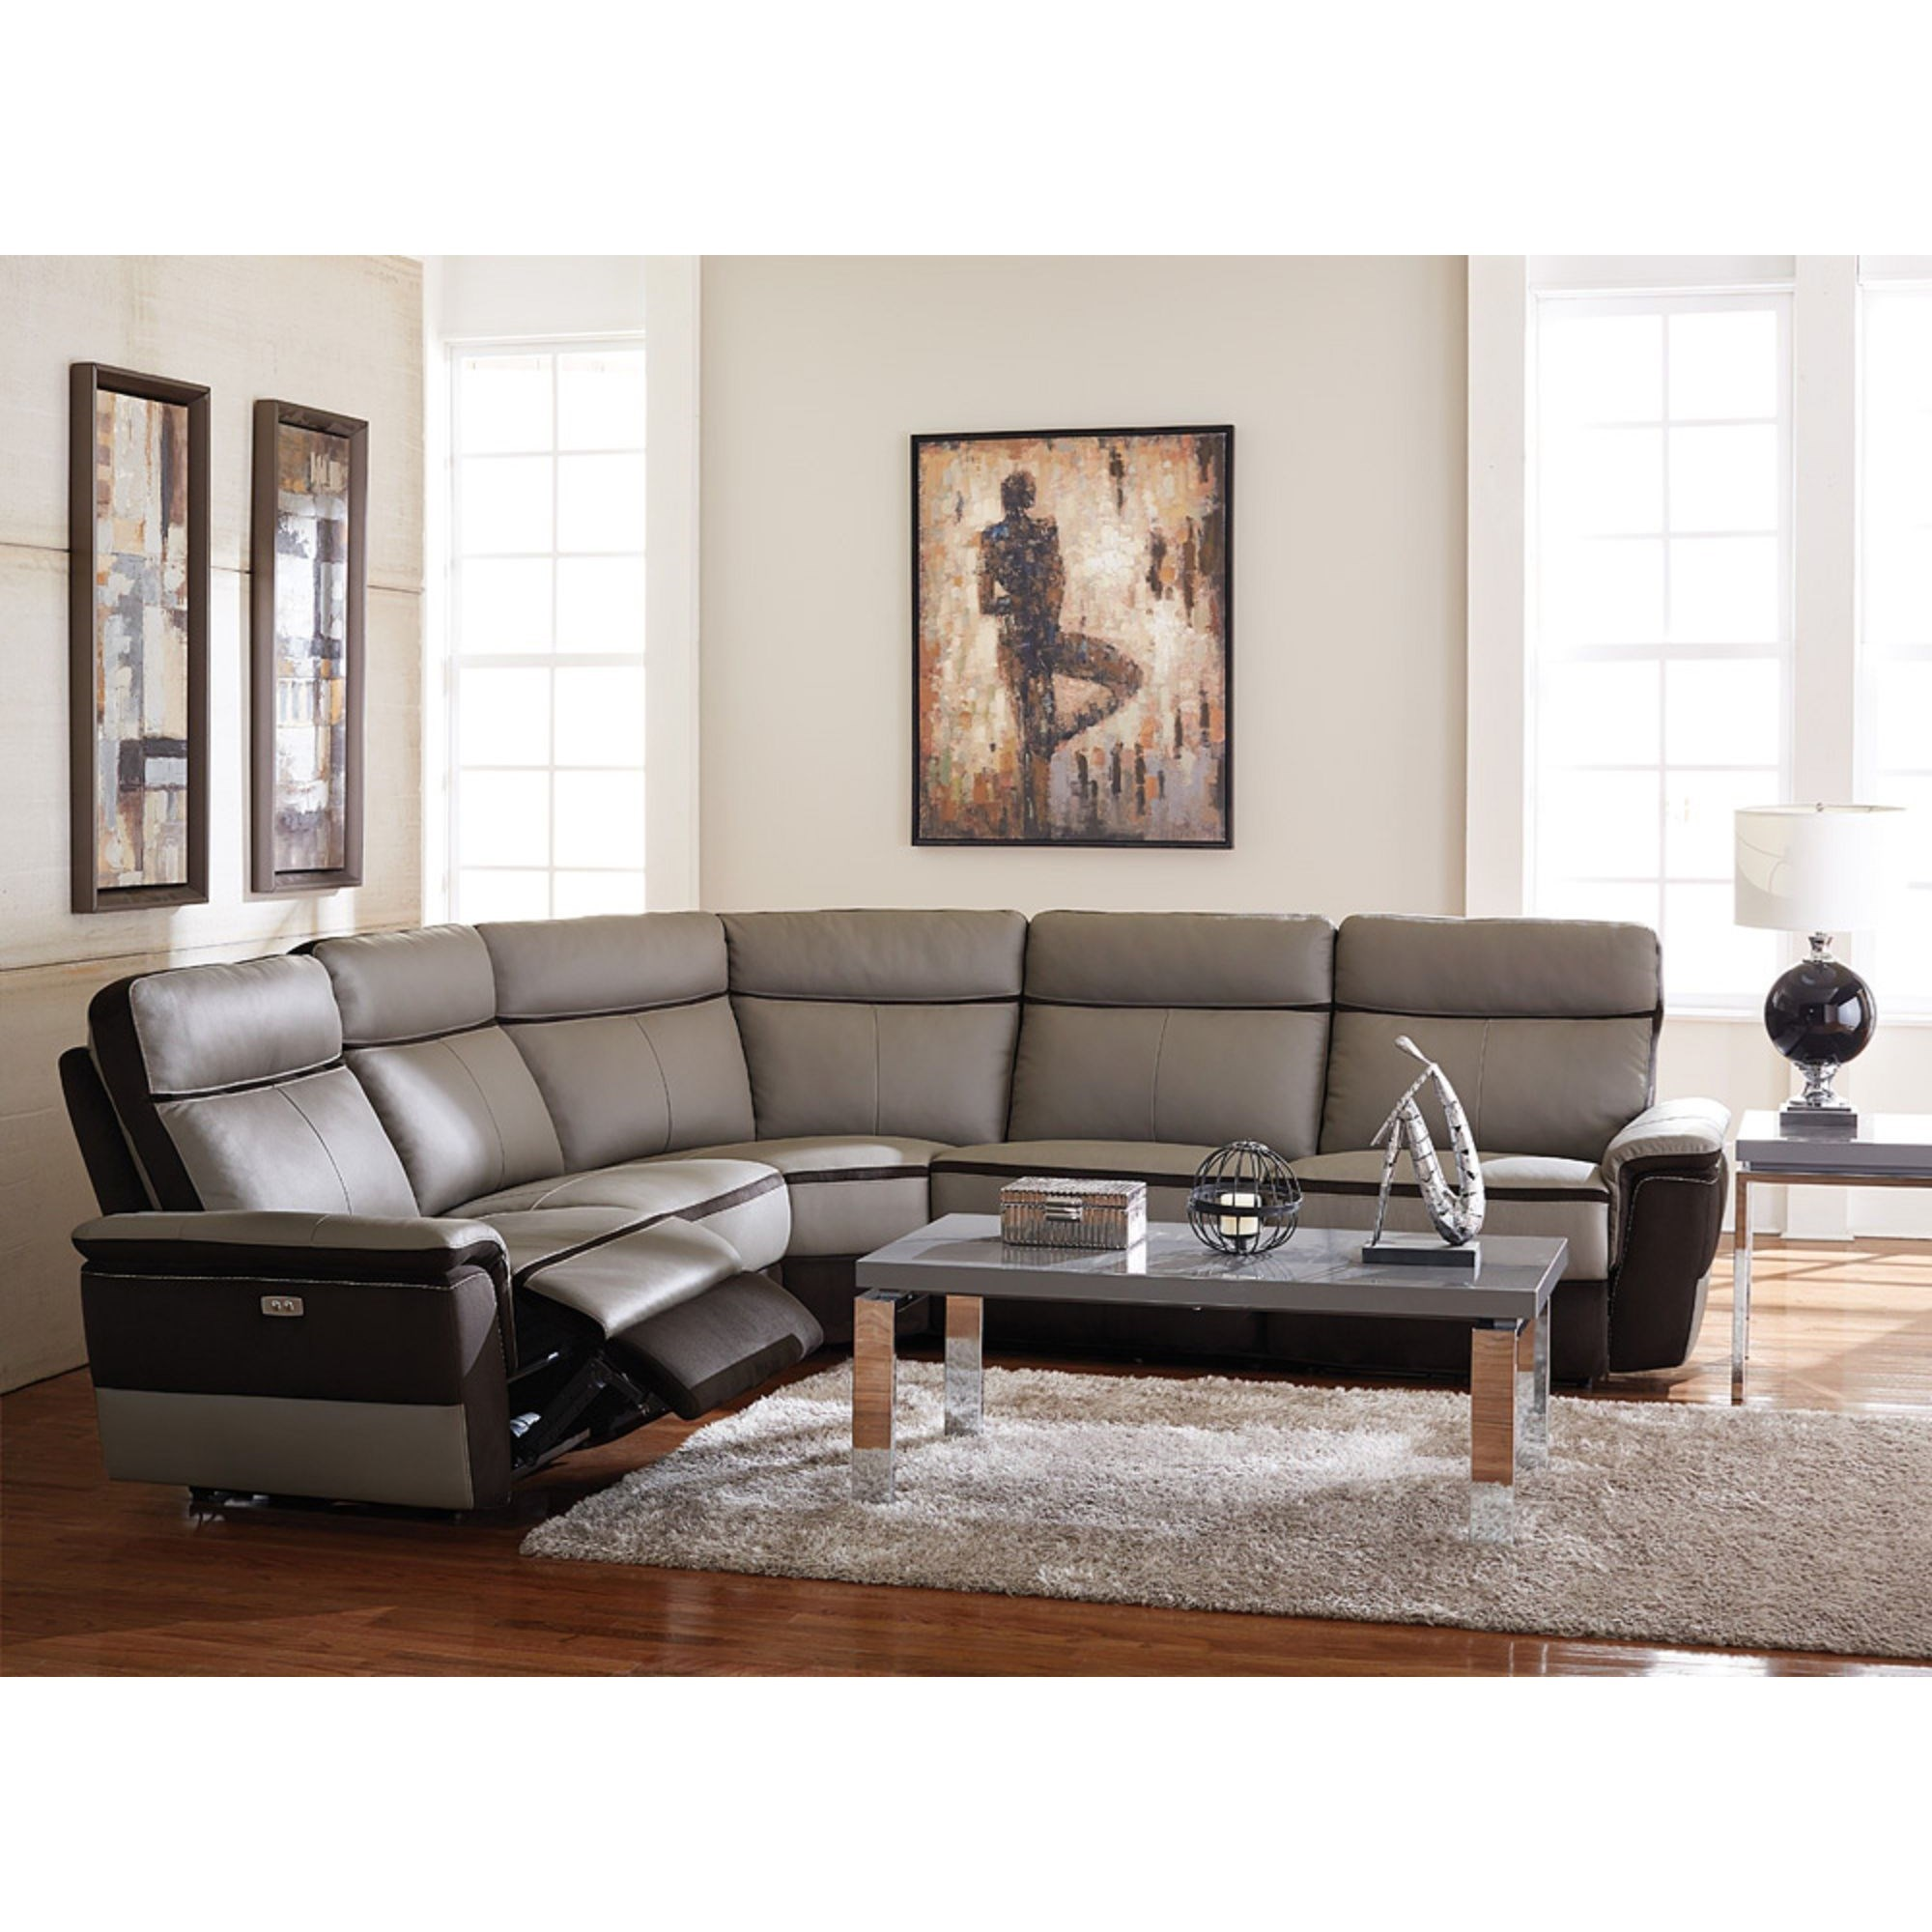 sectional reclining leather sofas queen sofa bed with memory foam mattress homelegance laertes contemporary power